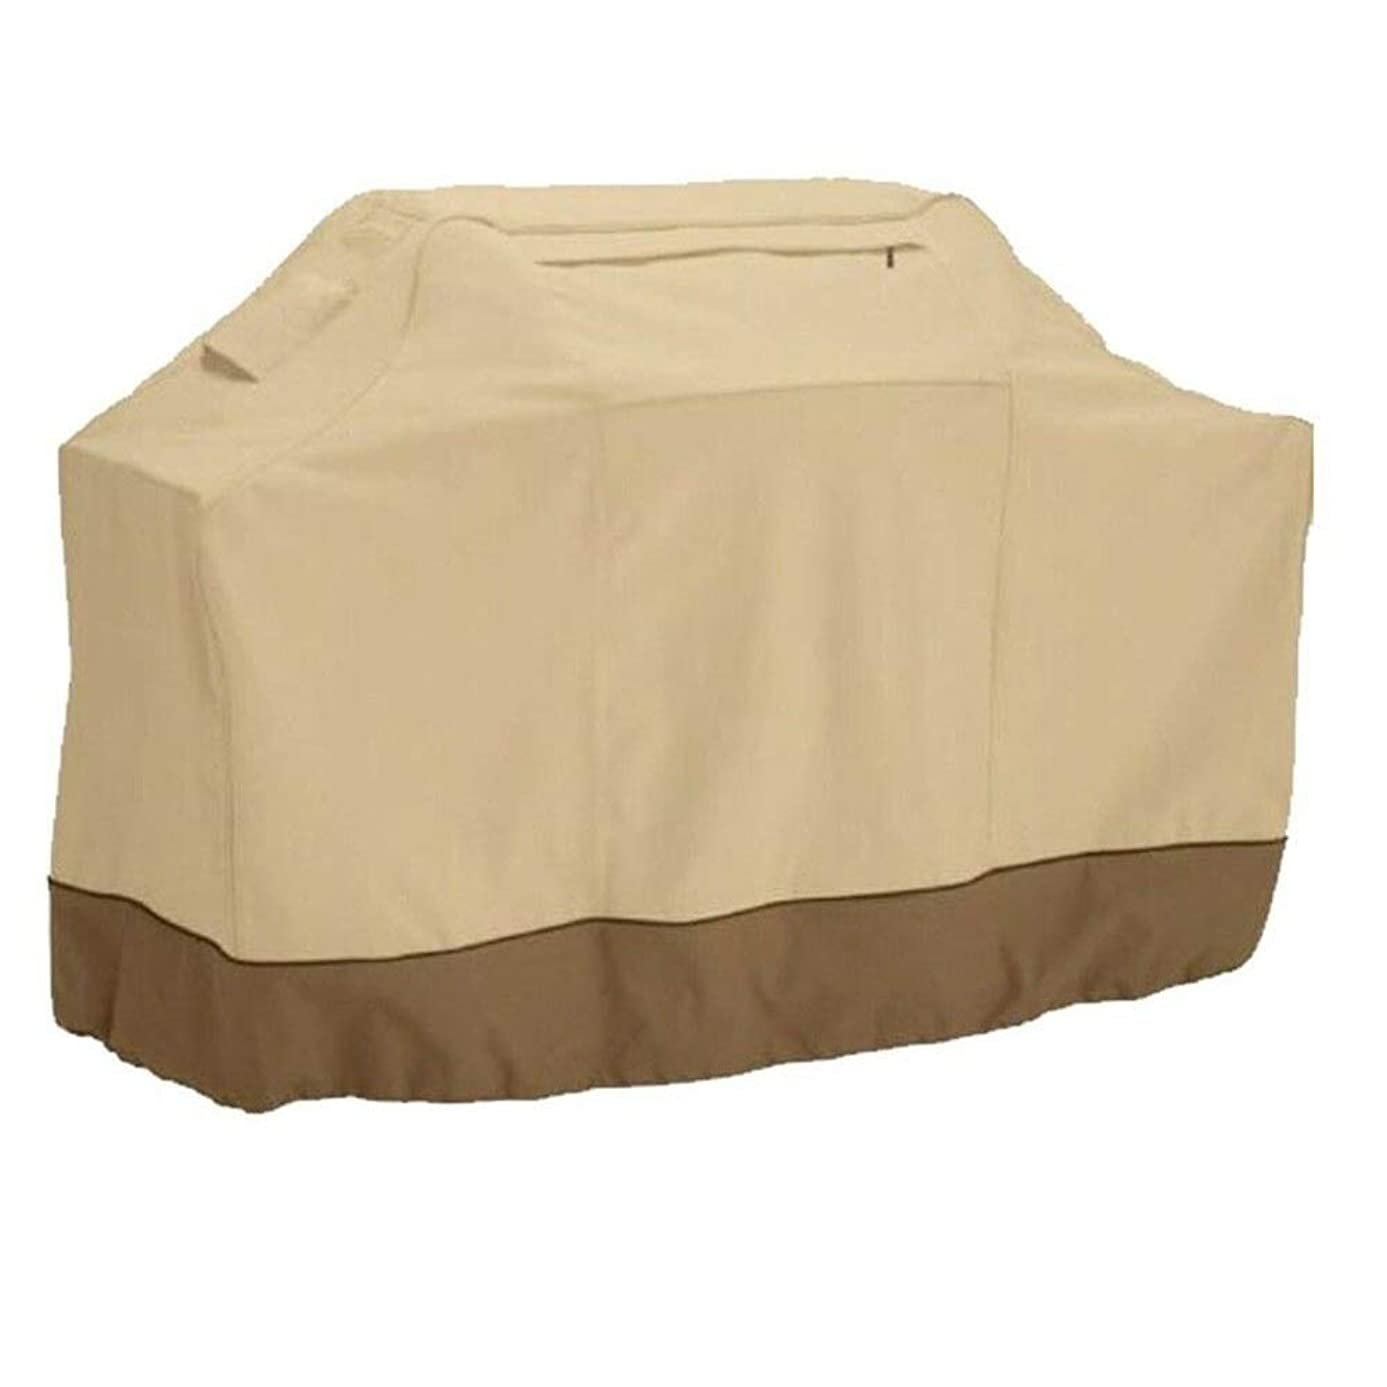 Pastel Cover Grill BBQ Waterproof Barbecue Gas Outdoor Barbecue Grill Cover 600D Heavy Duty 64 inches Beige L 64 x W 24 x H 48 inches